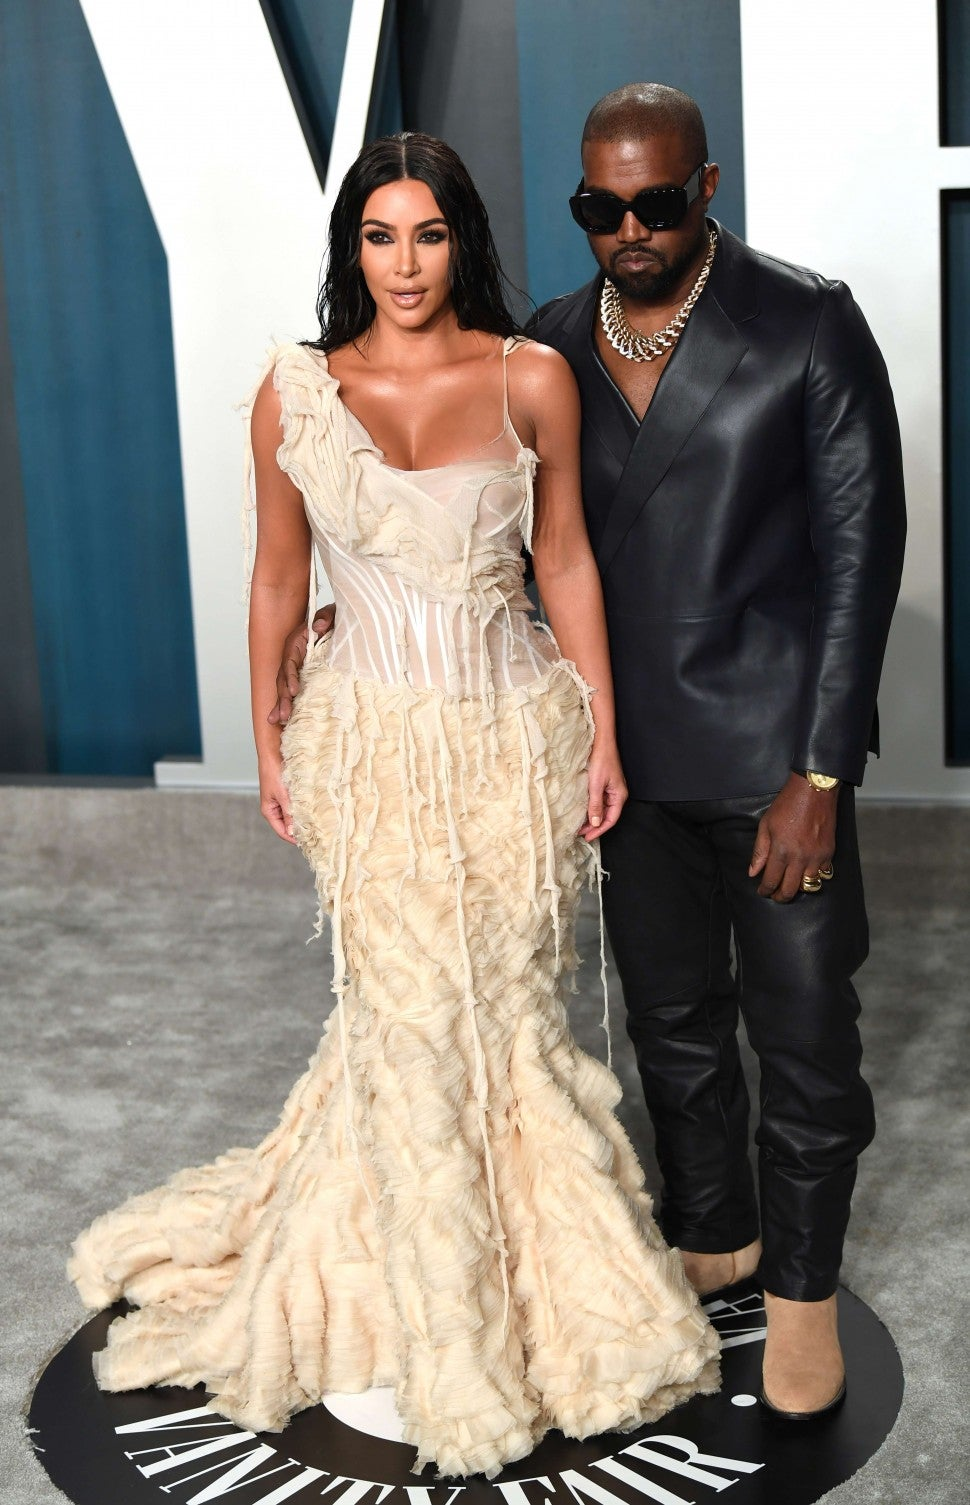 Kim Kardashian and Kanye West at the Vanity Fair Oscars Party 2020